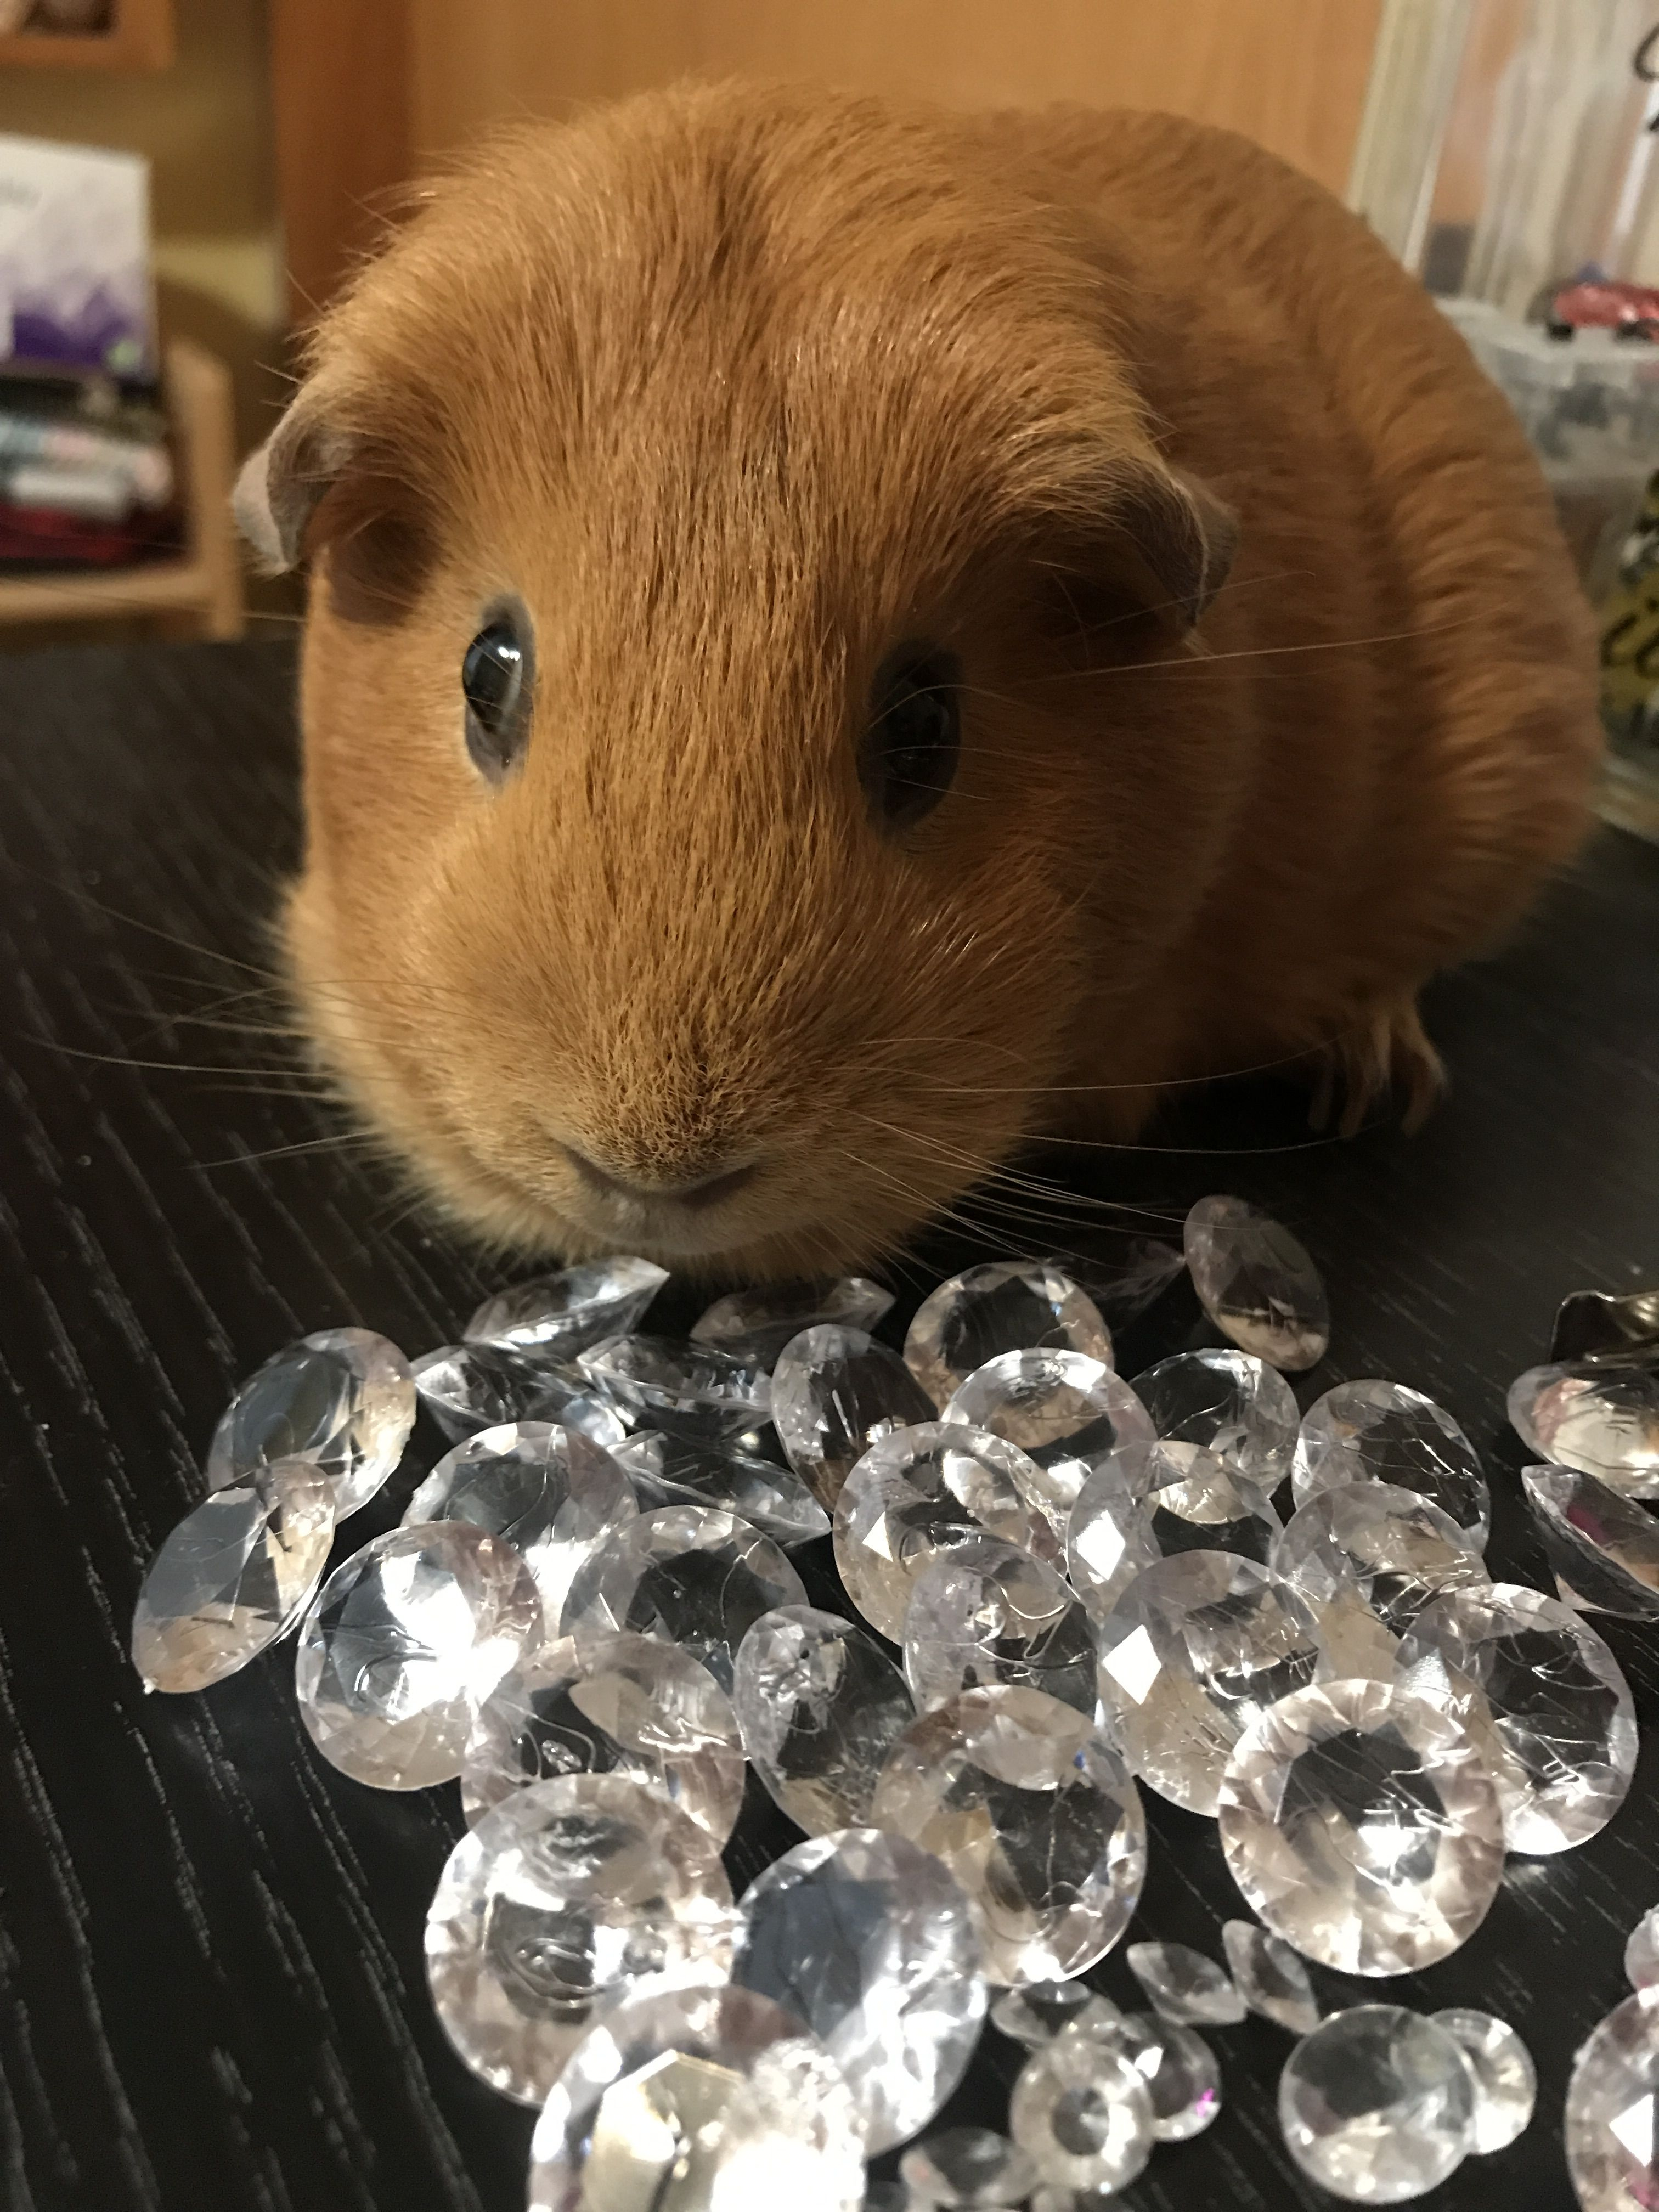 Pin by Vera on My cute cavies pumpkin and Thor in 2020